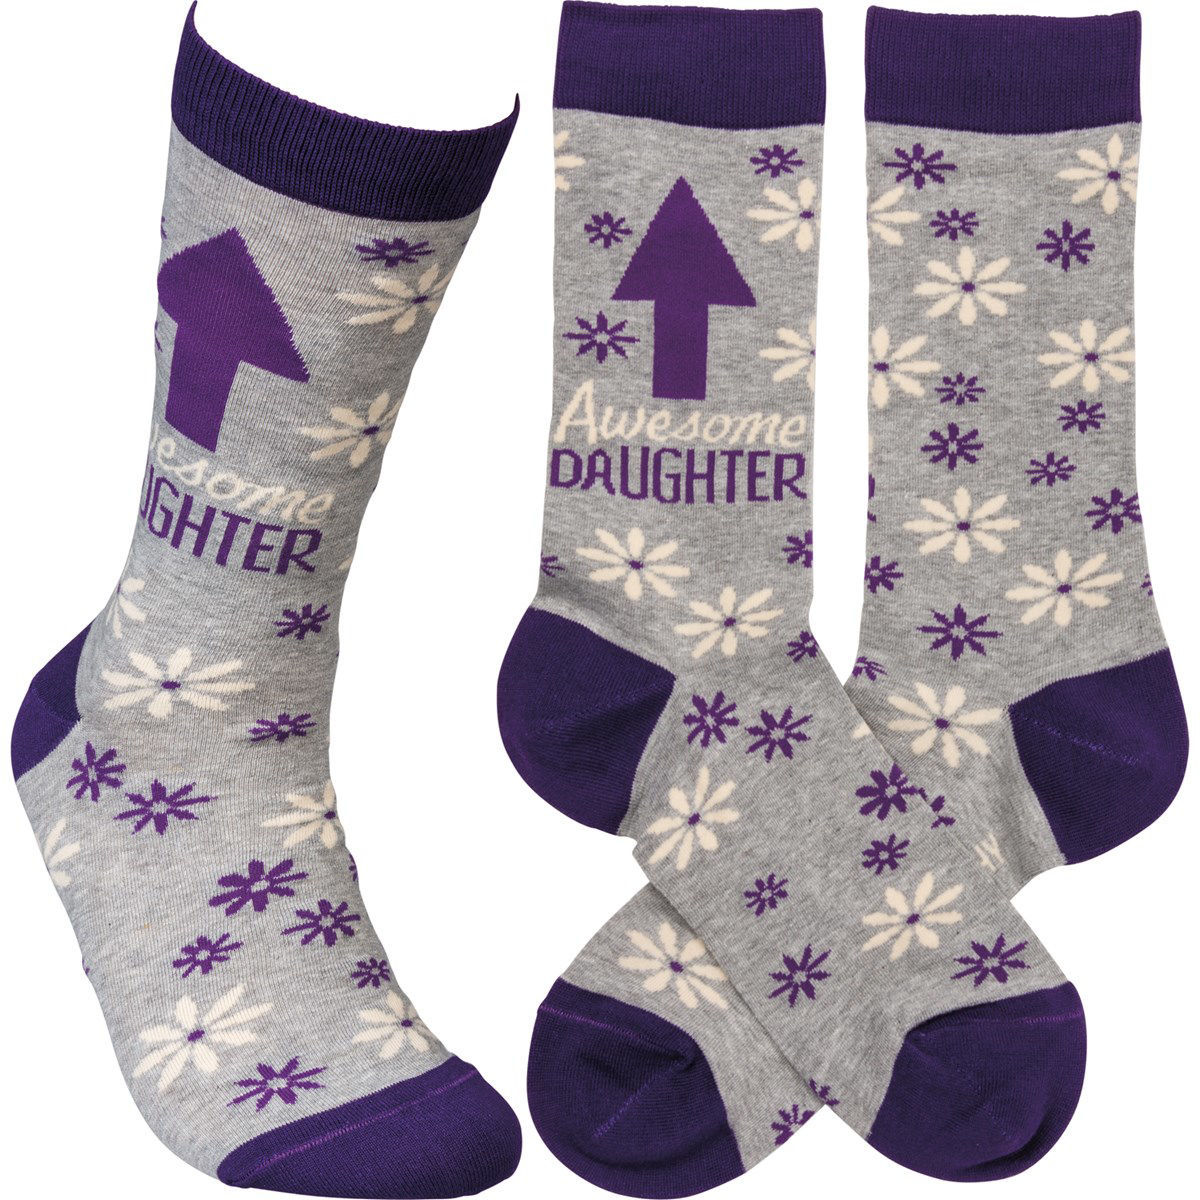 Awesome Daughter Socks by Primitives by Kathy